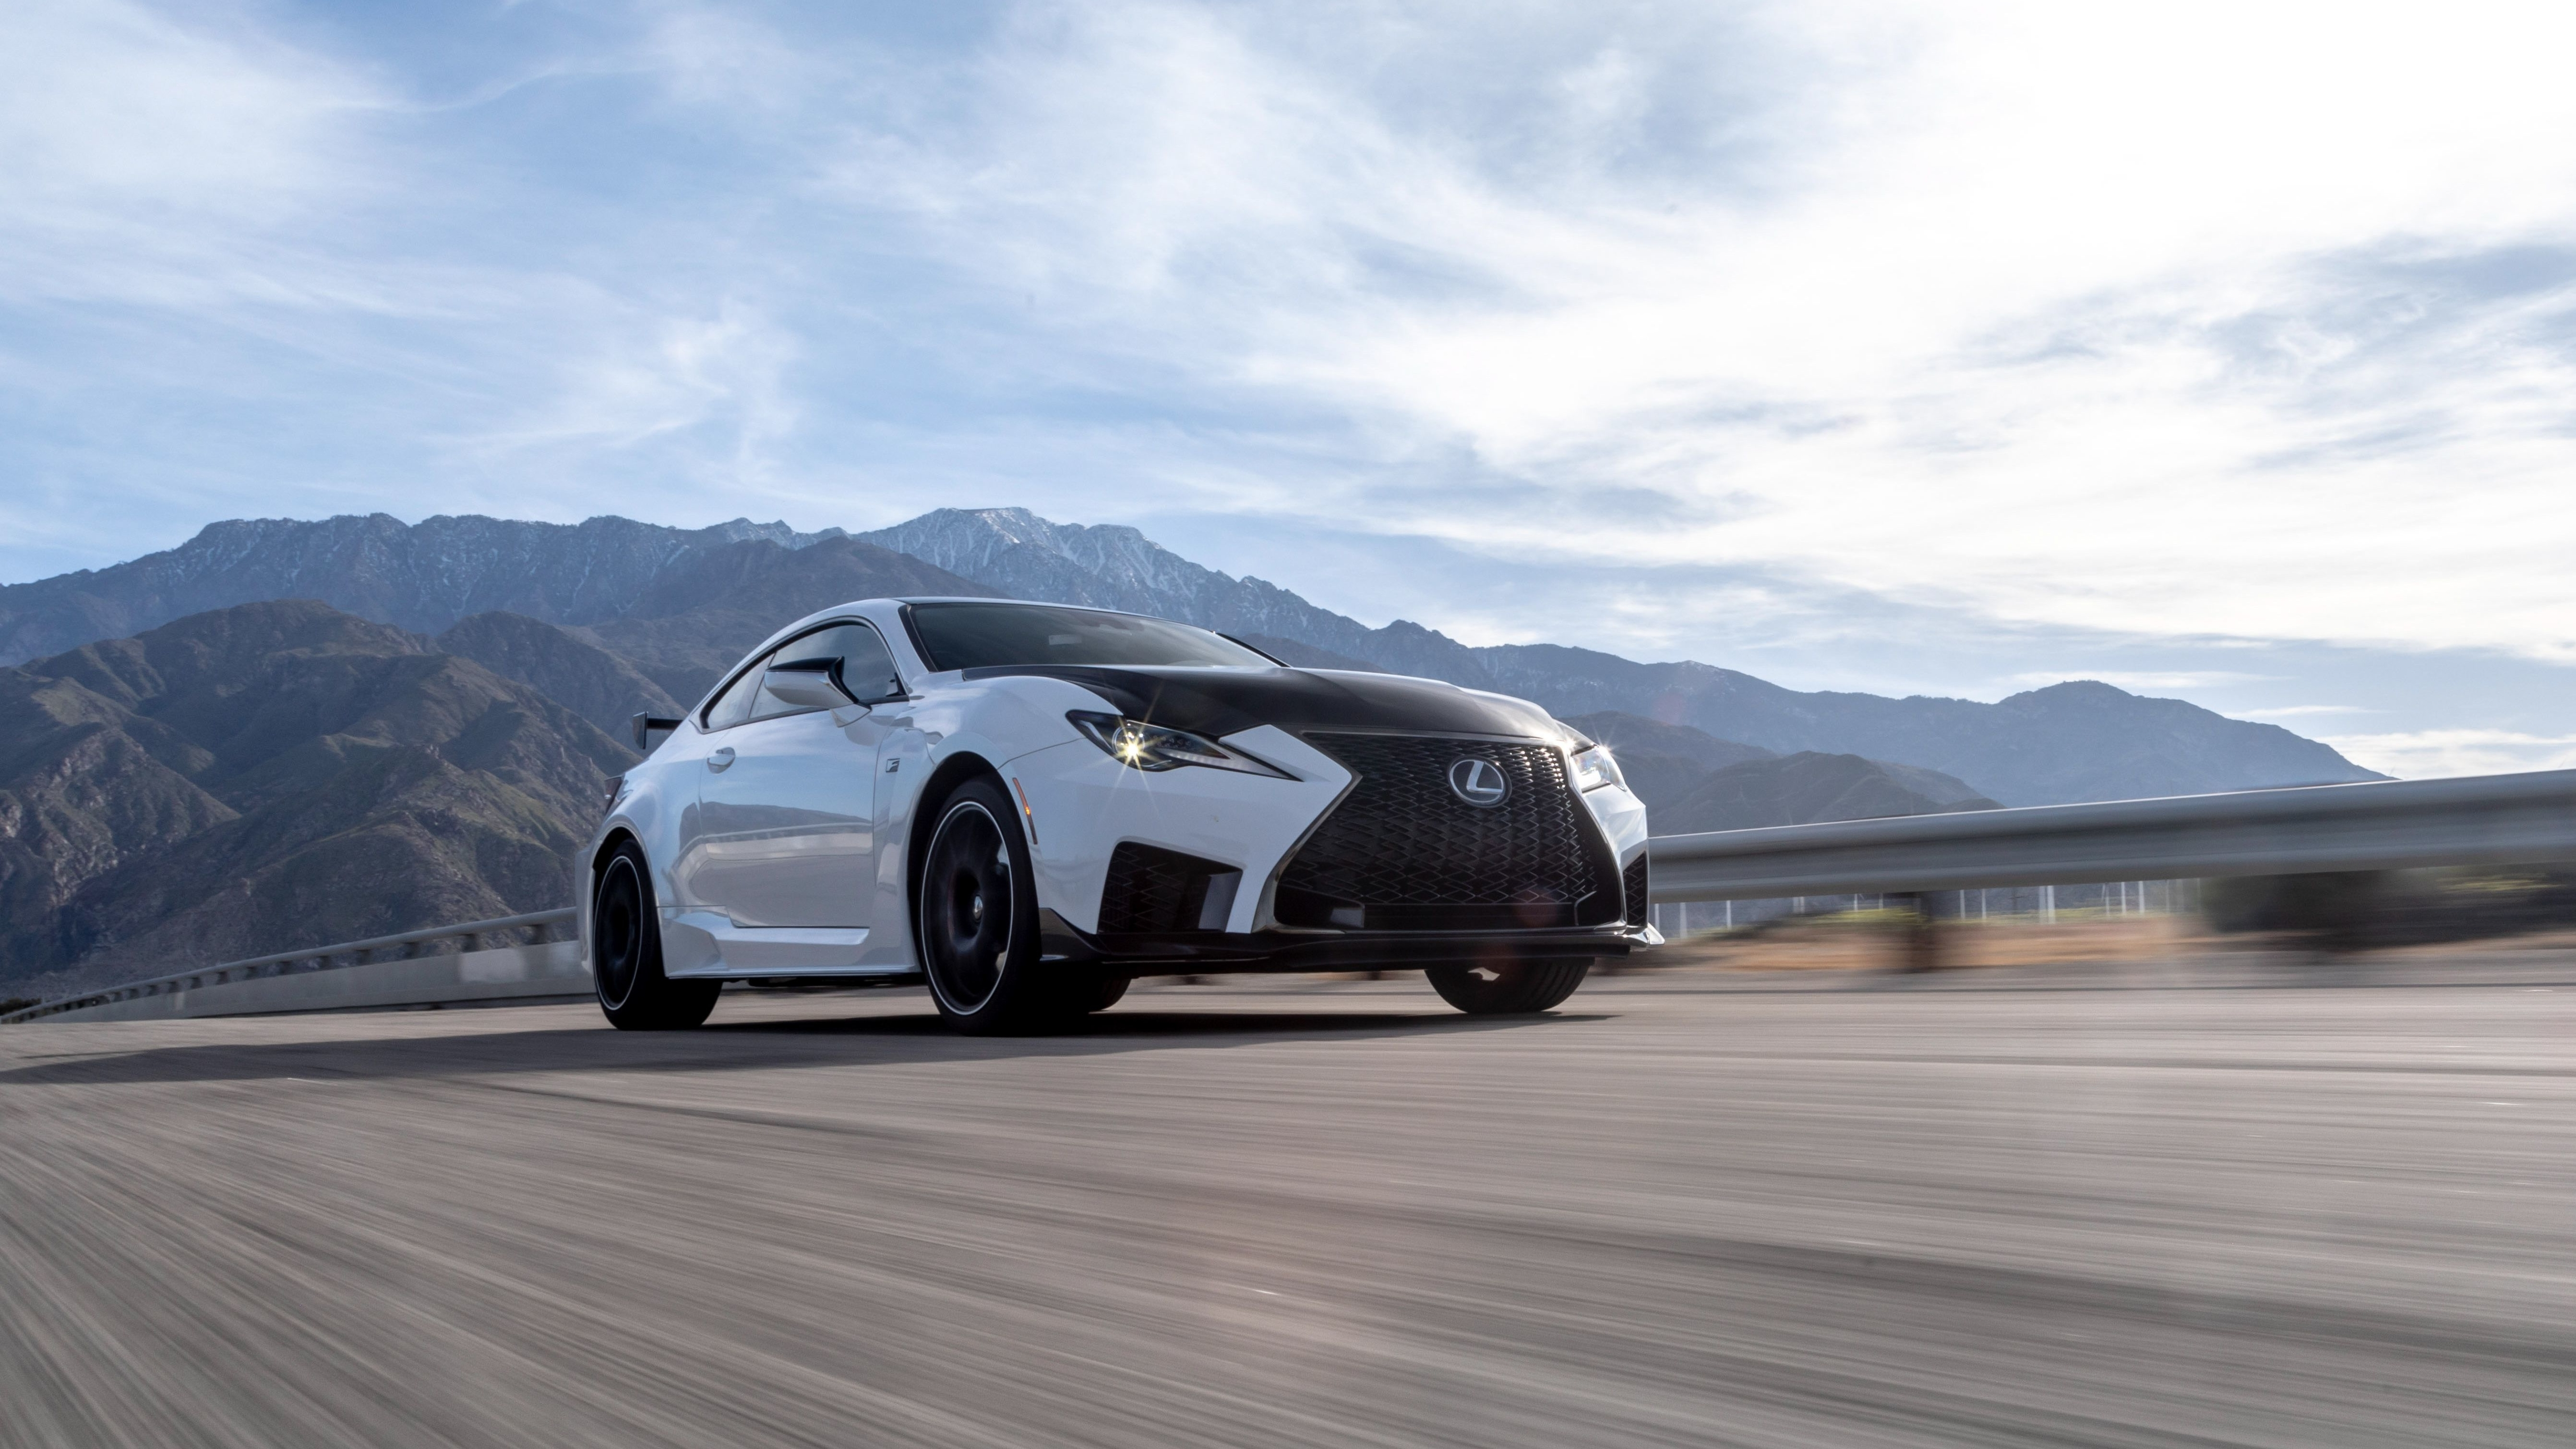 5120x2880 Lexus Rc F Track Edition 5k Wallpaper Hd Cars 4k Wallpapers Images Photos And Background Wallpapers Den